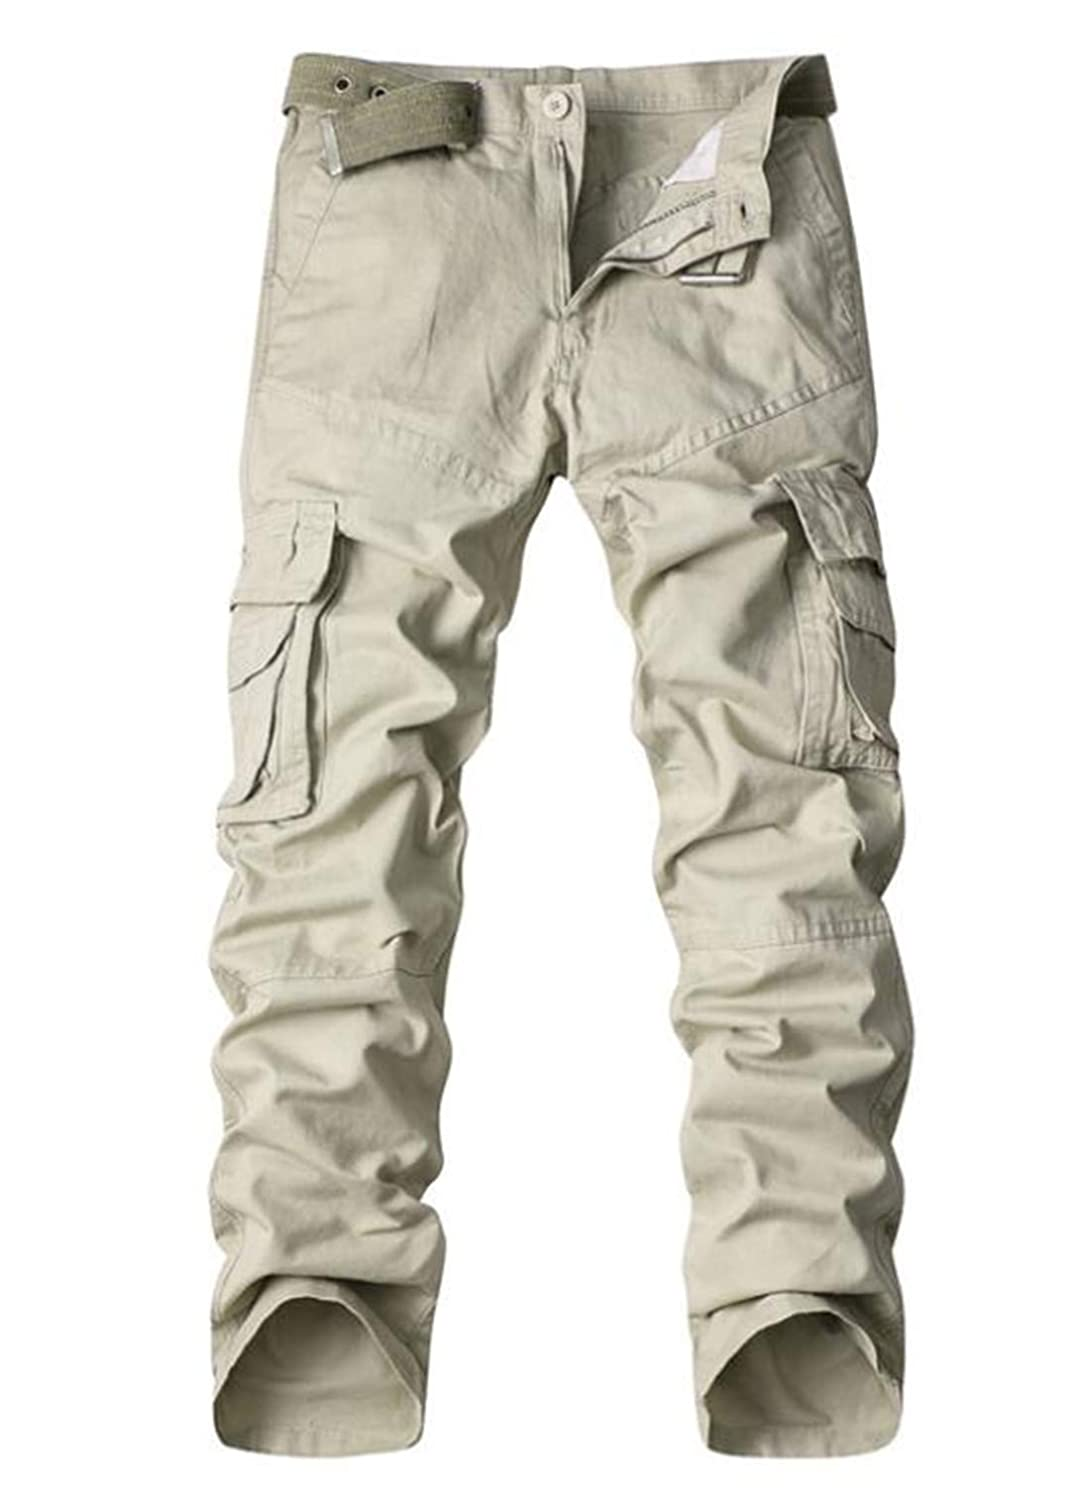 WNSY Men Casual Military Tactical Wild Combat Cargo Work Pants